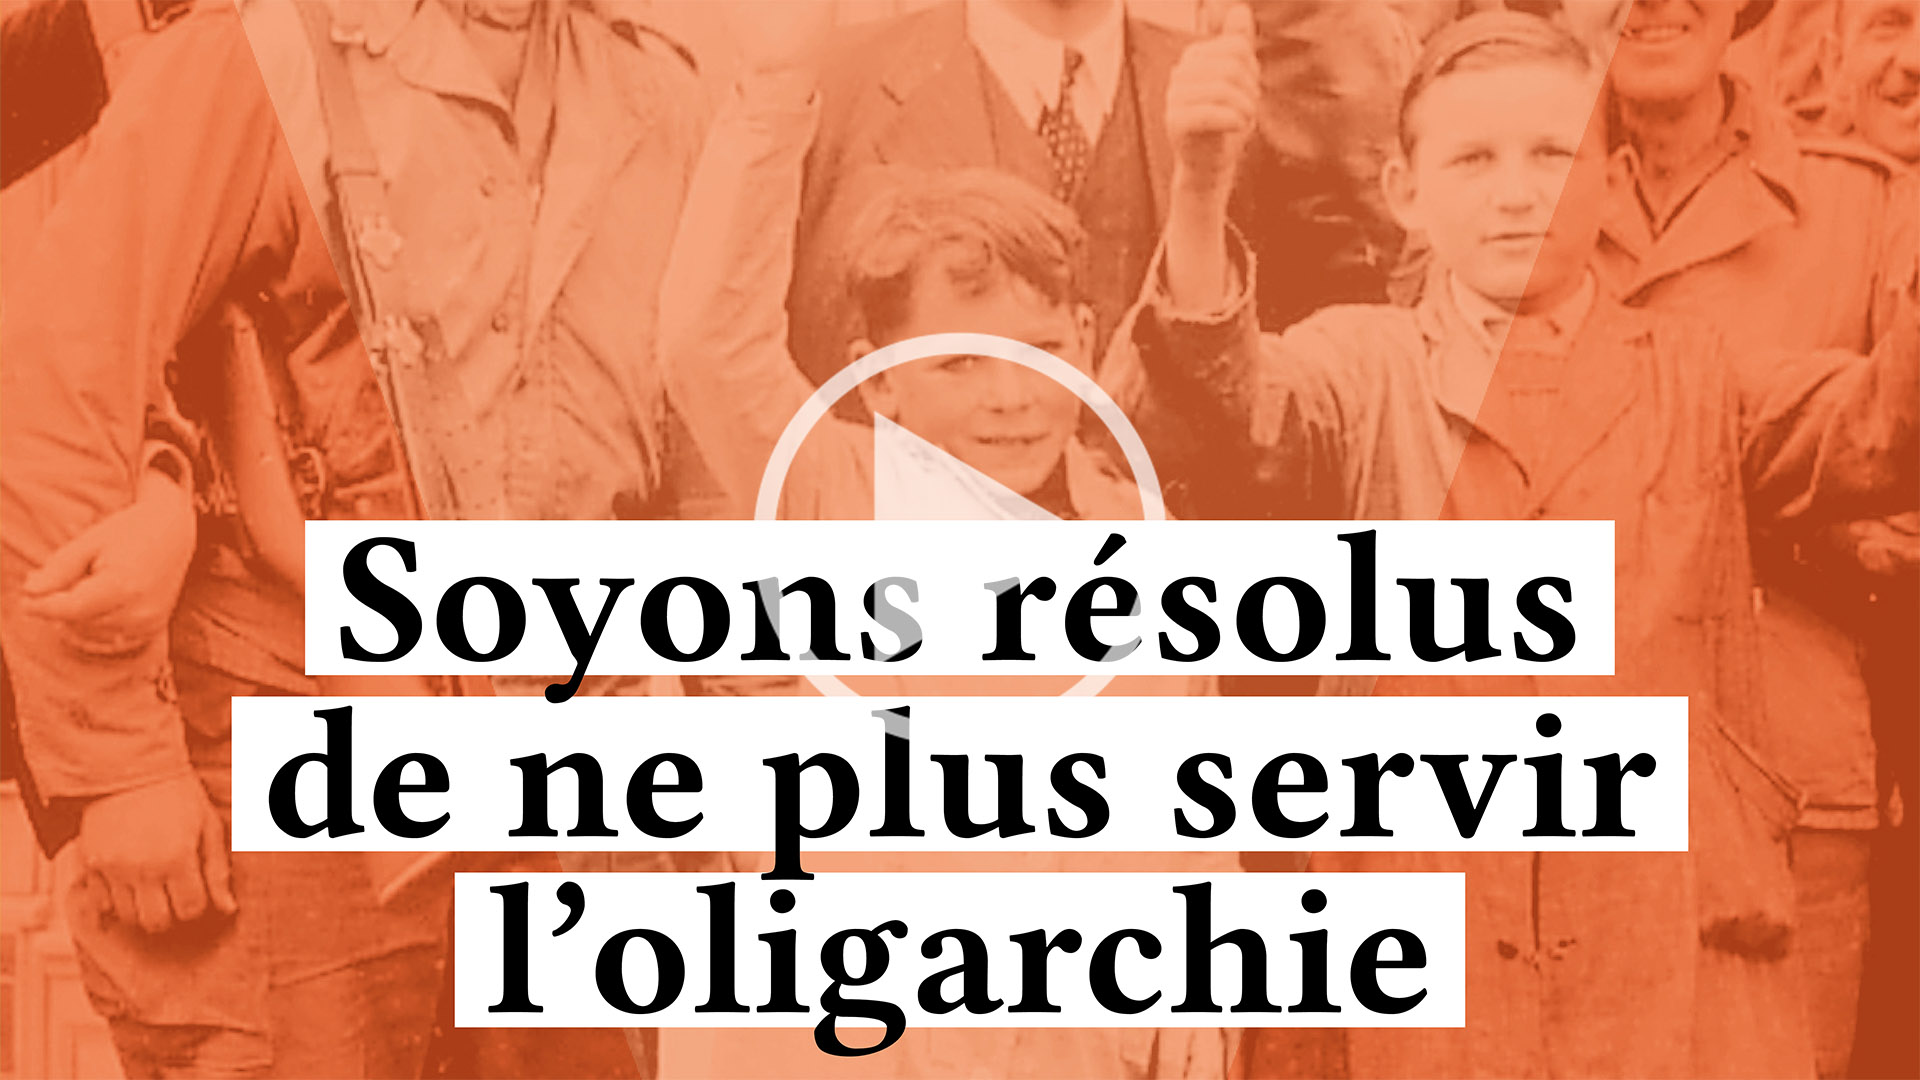 VIDEO - Soyons résolus de ne plus servir l'oligarchie